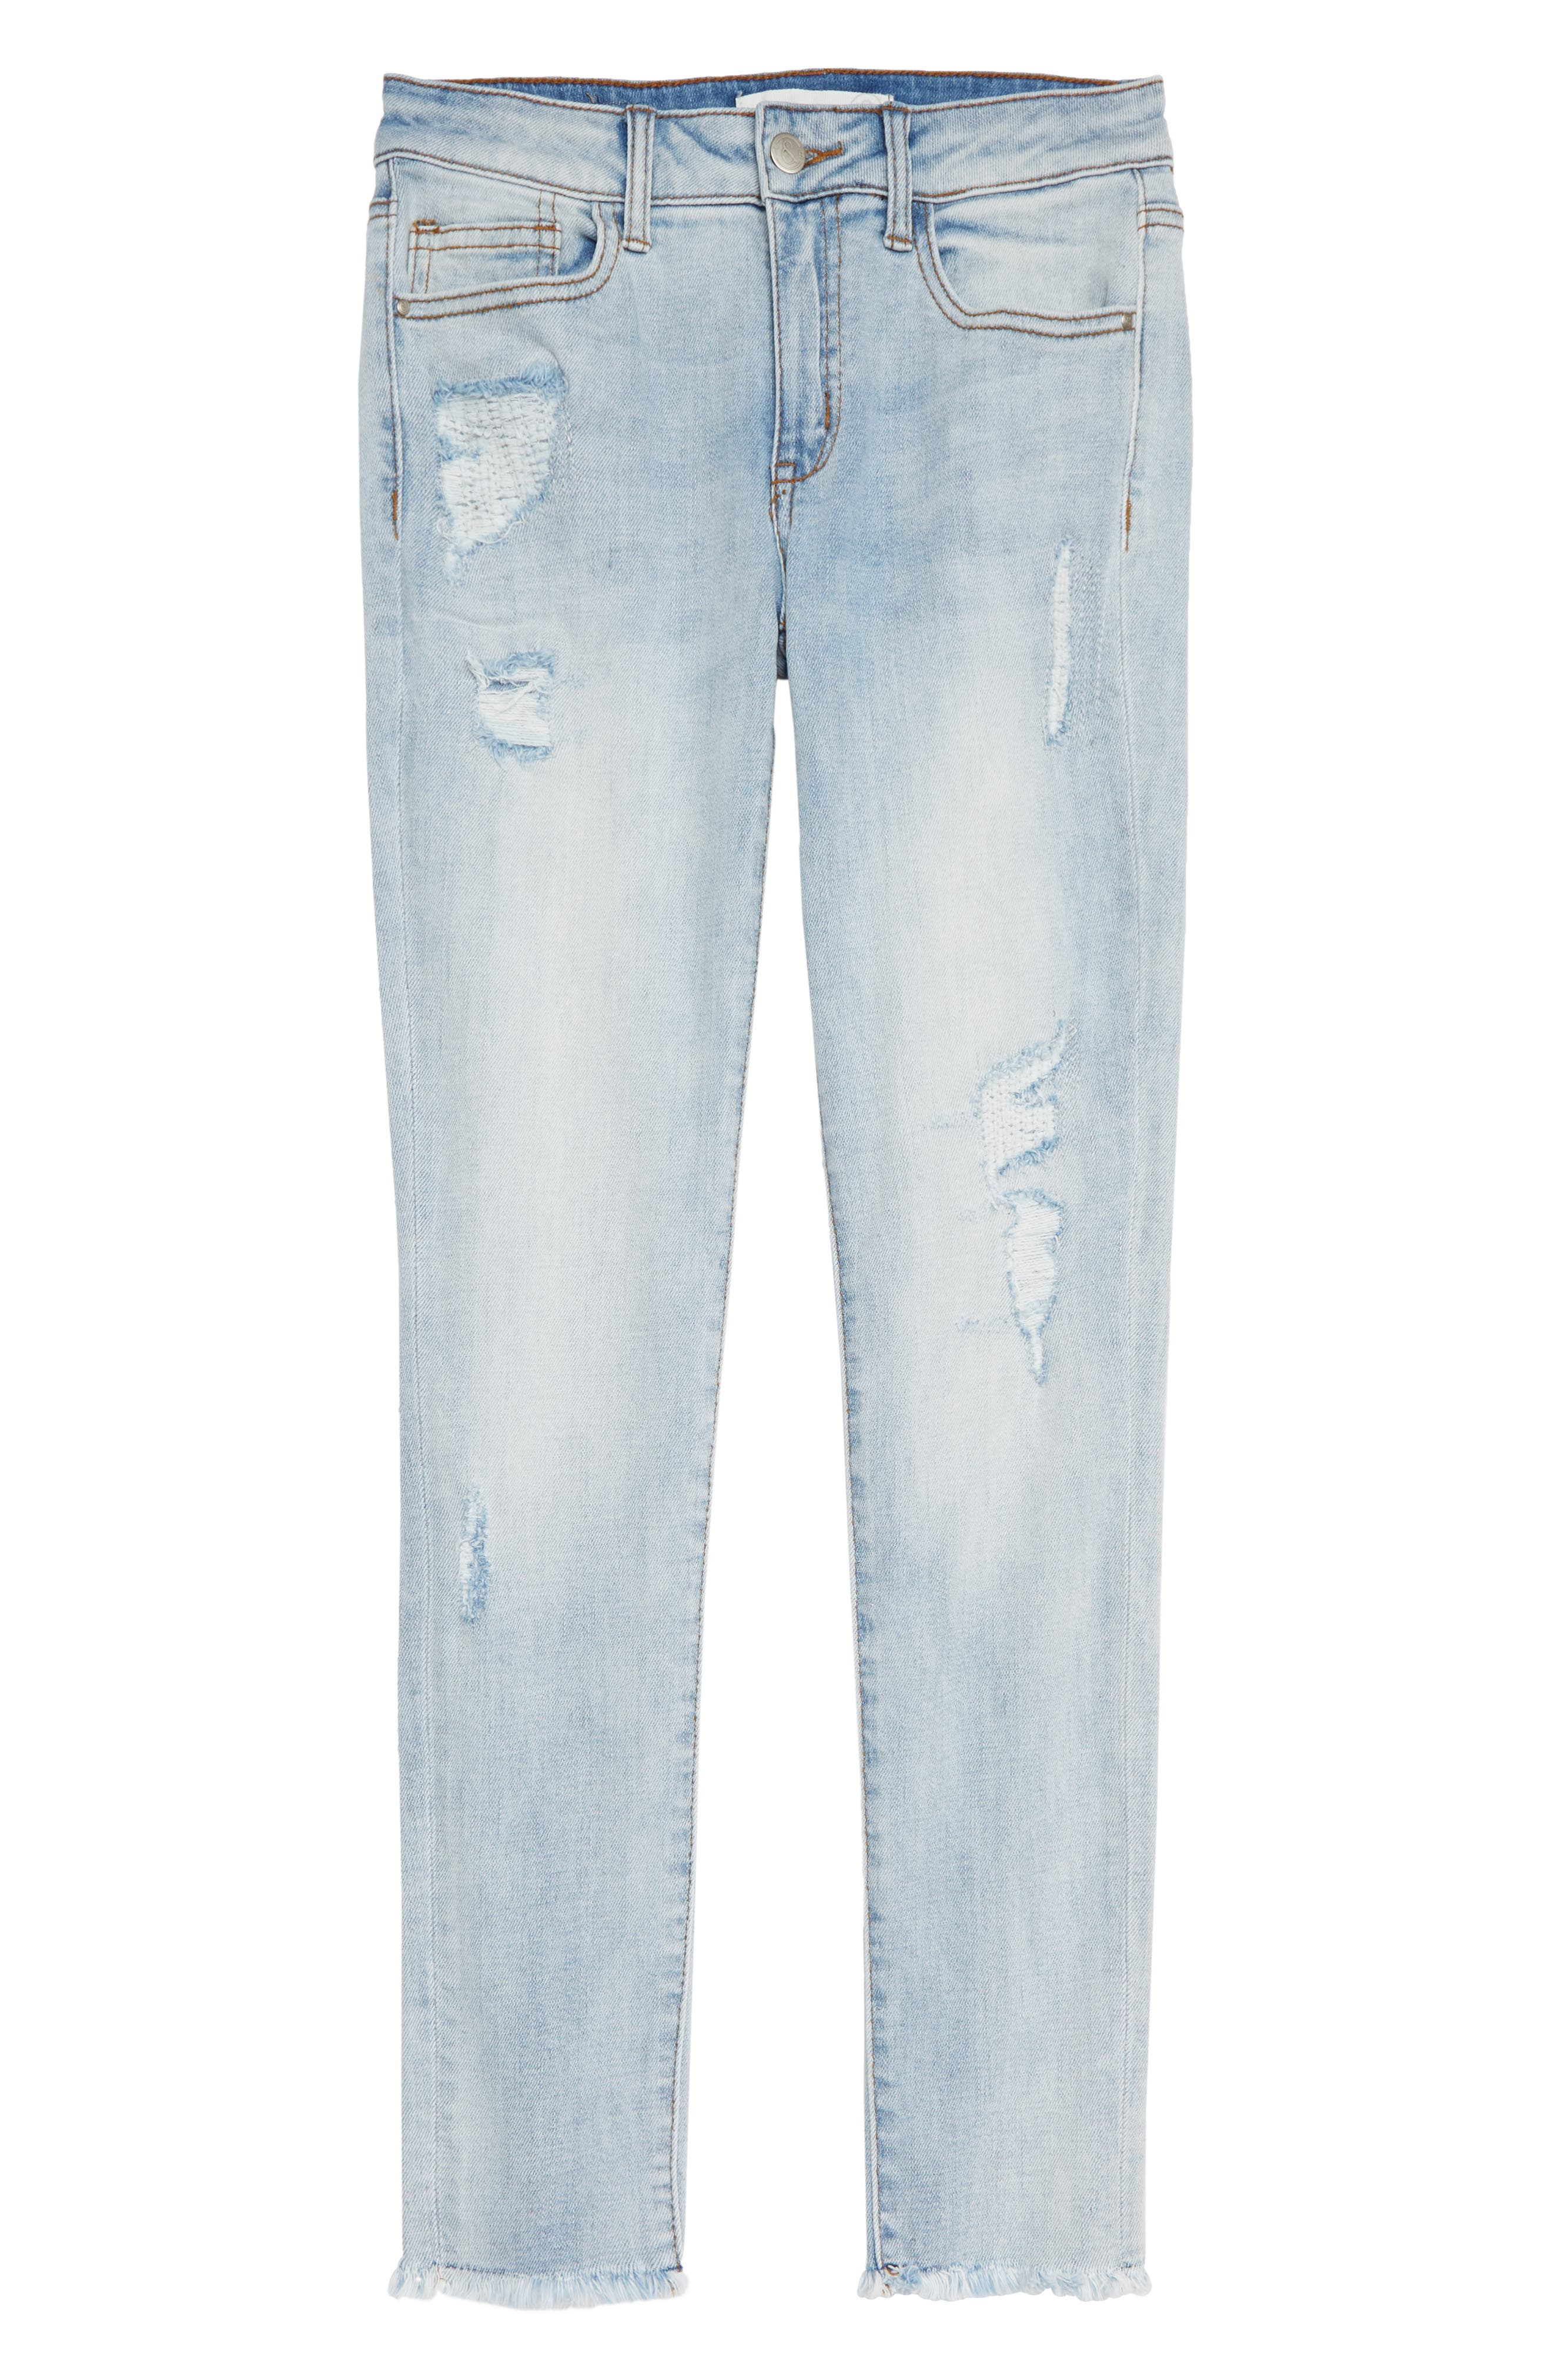 Repaired Girlfriend Jeans,                             Main thumbnail 1, color,                             450